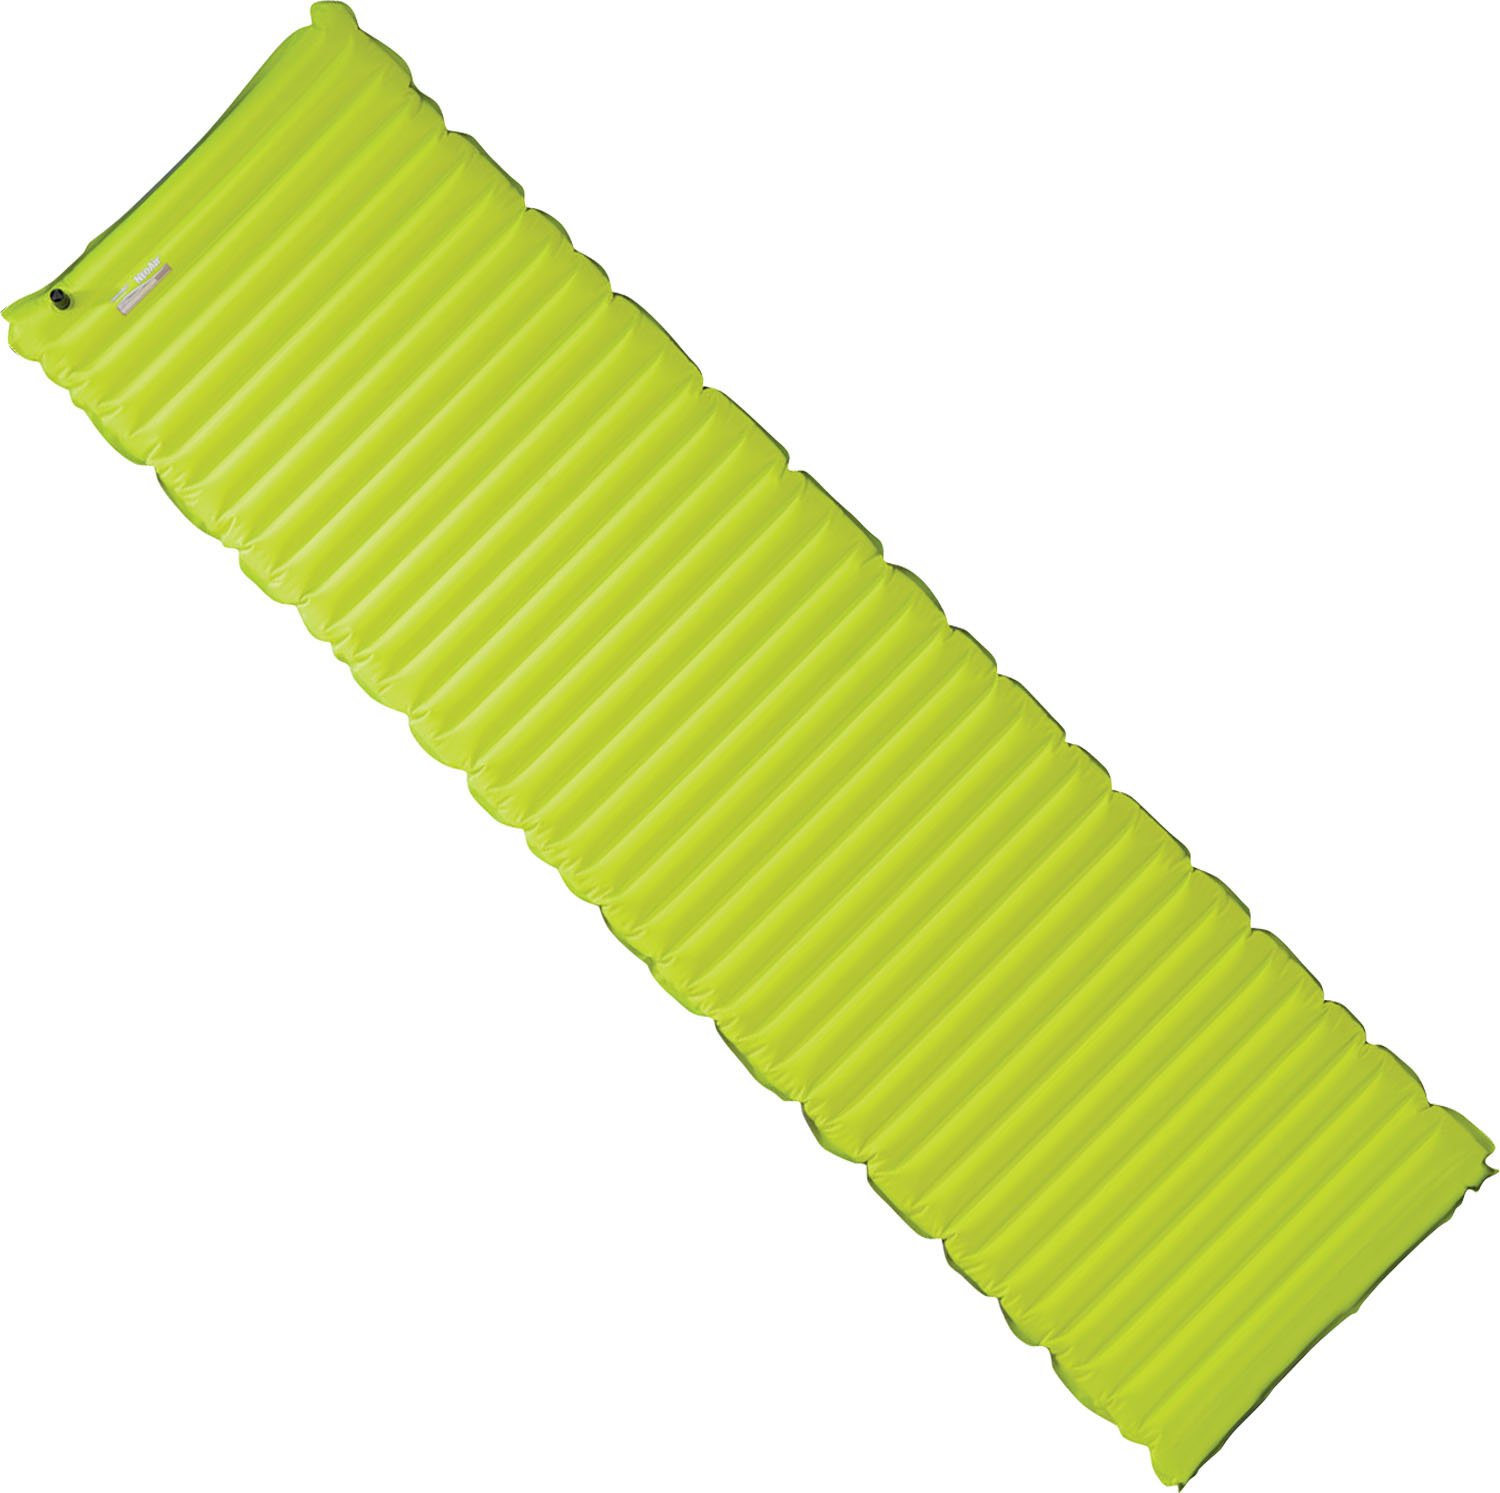 Therm-a-Rest Neoair Trekker Pad, Lime Punch, Large/77'' x 25''